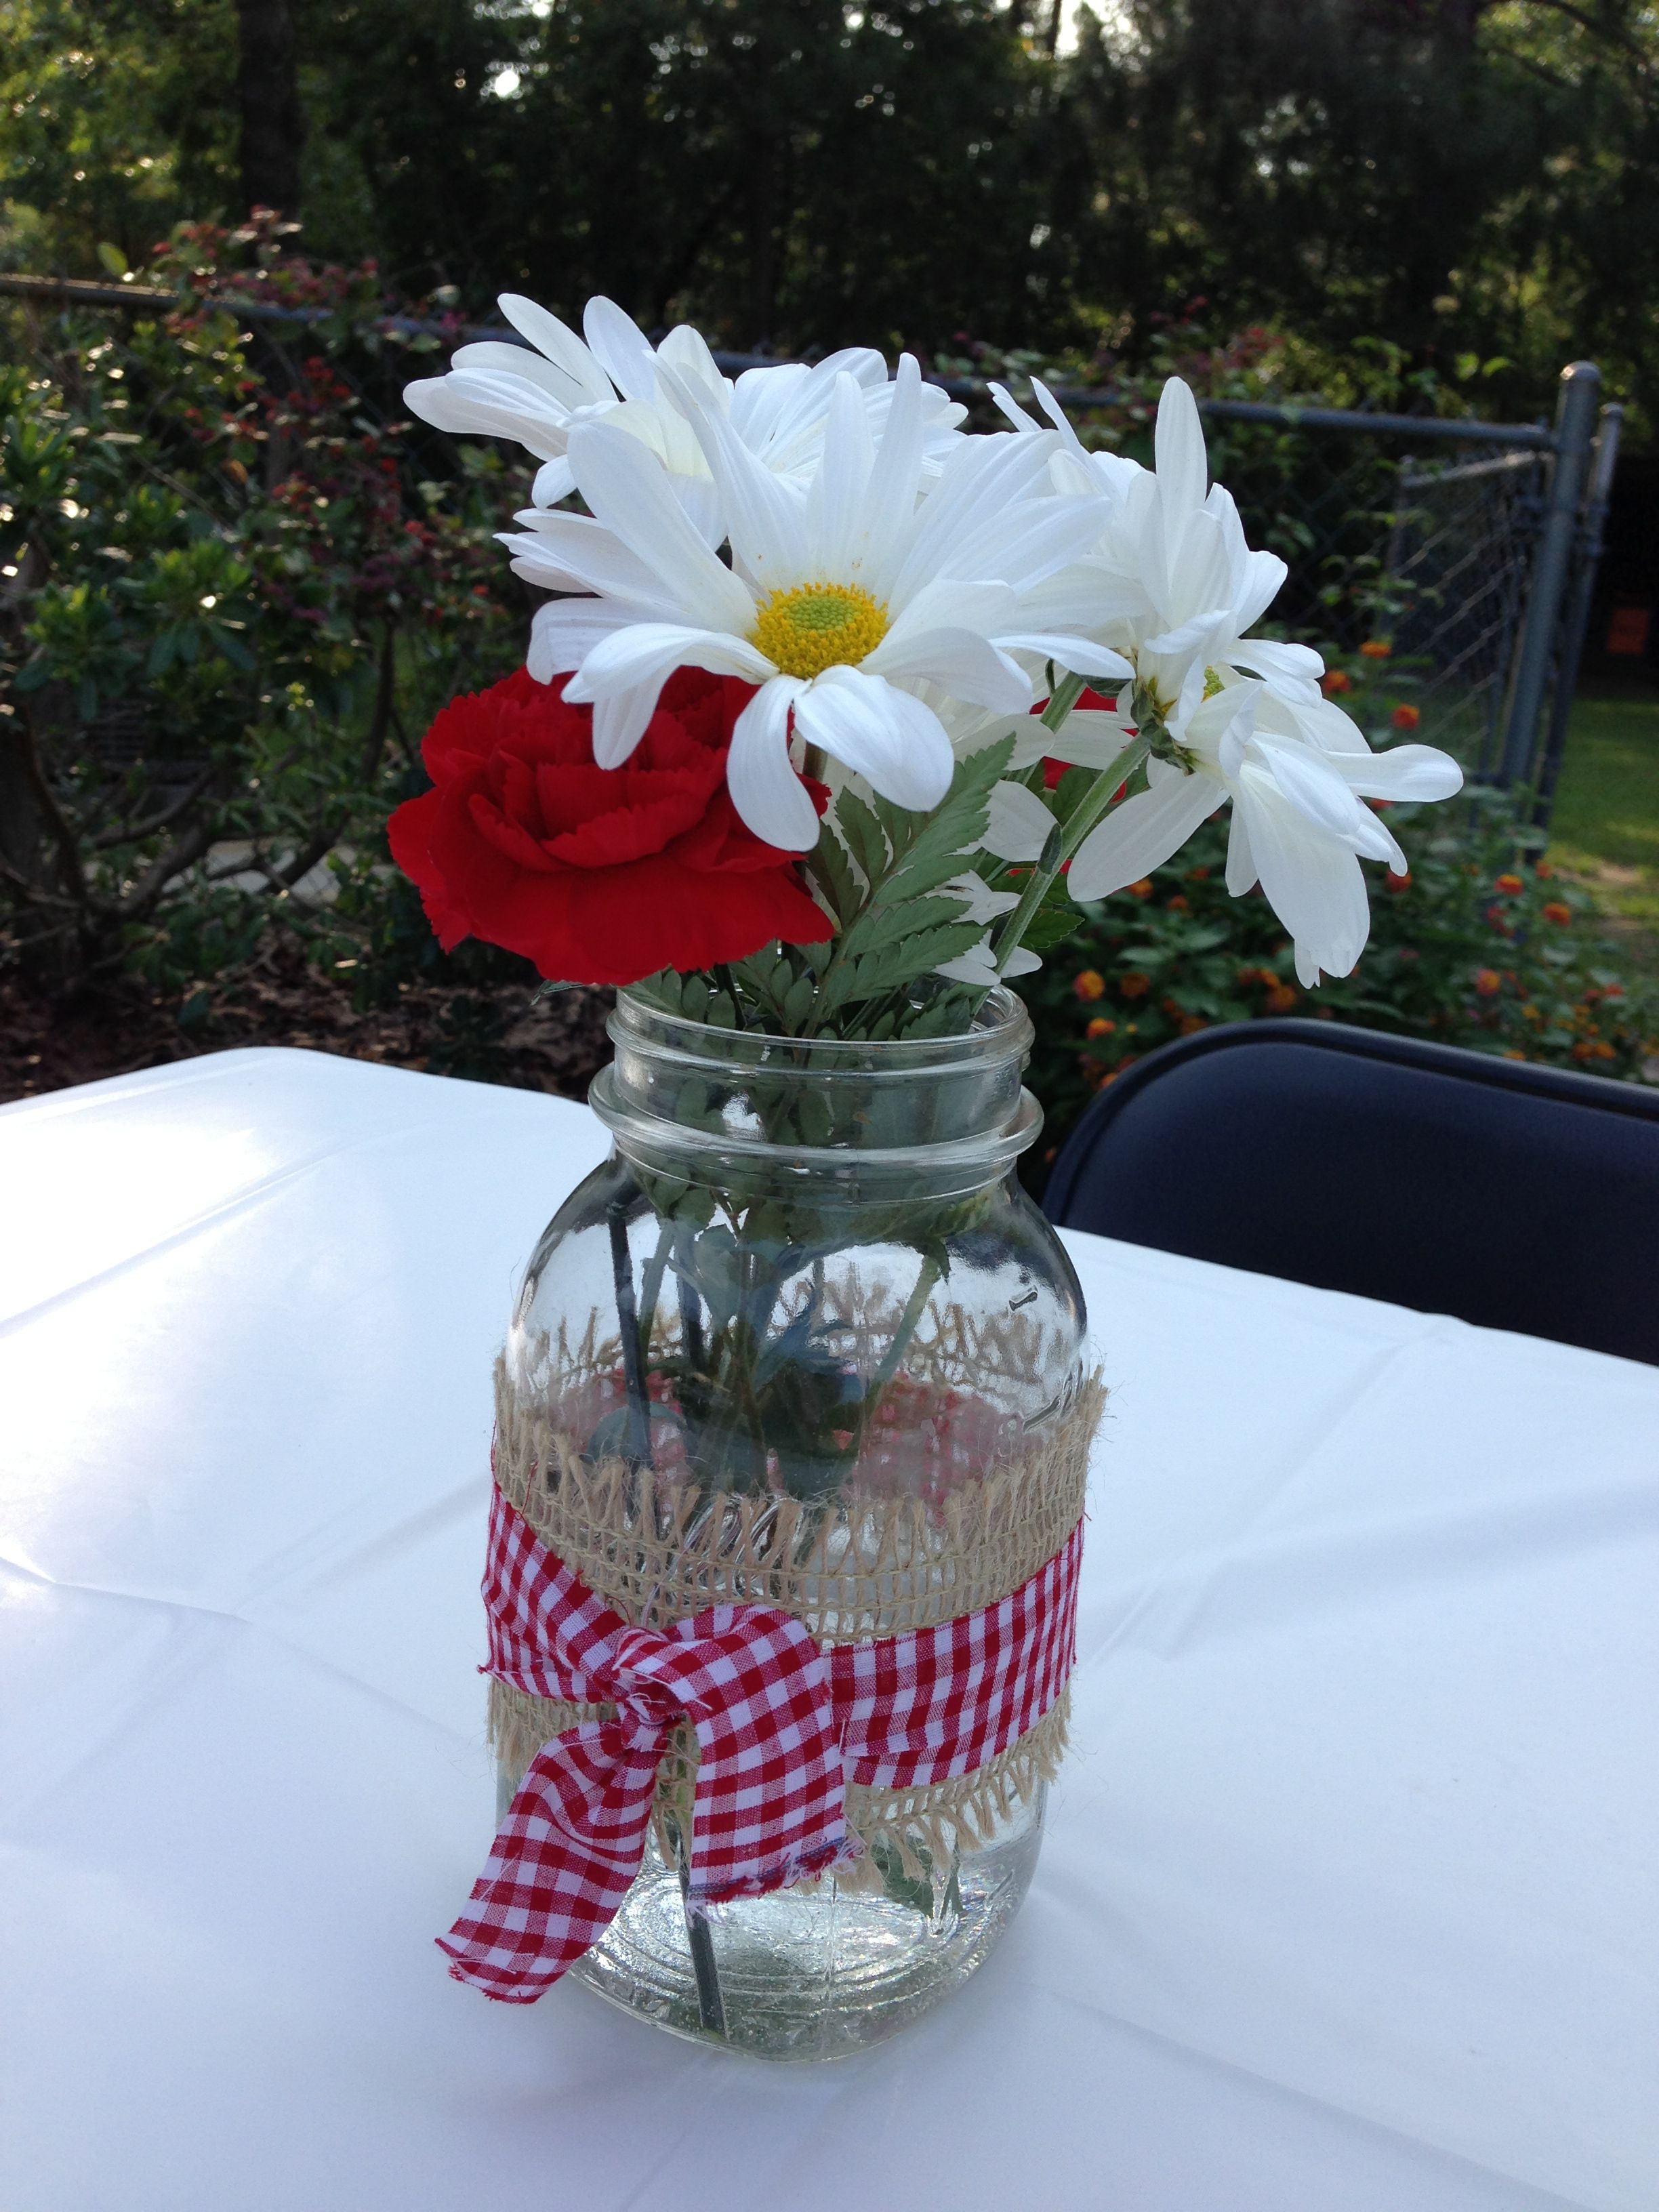 Flower Arrangement In A Mason Jar White Daisies And Red